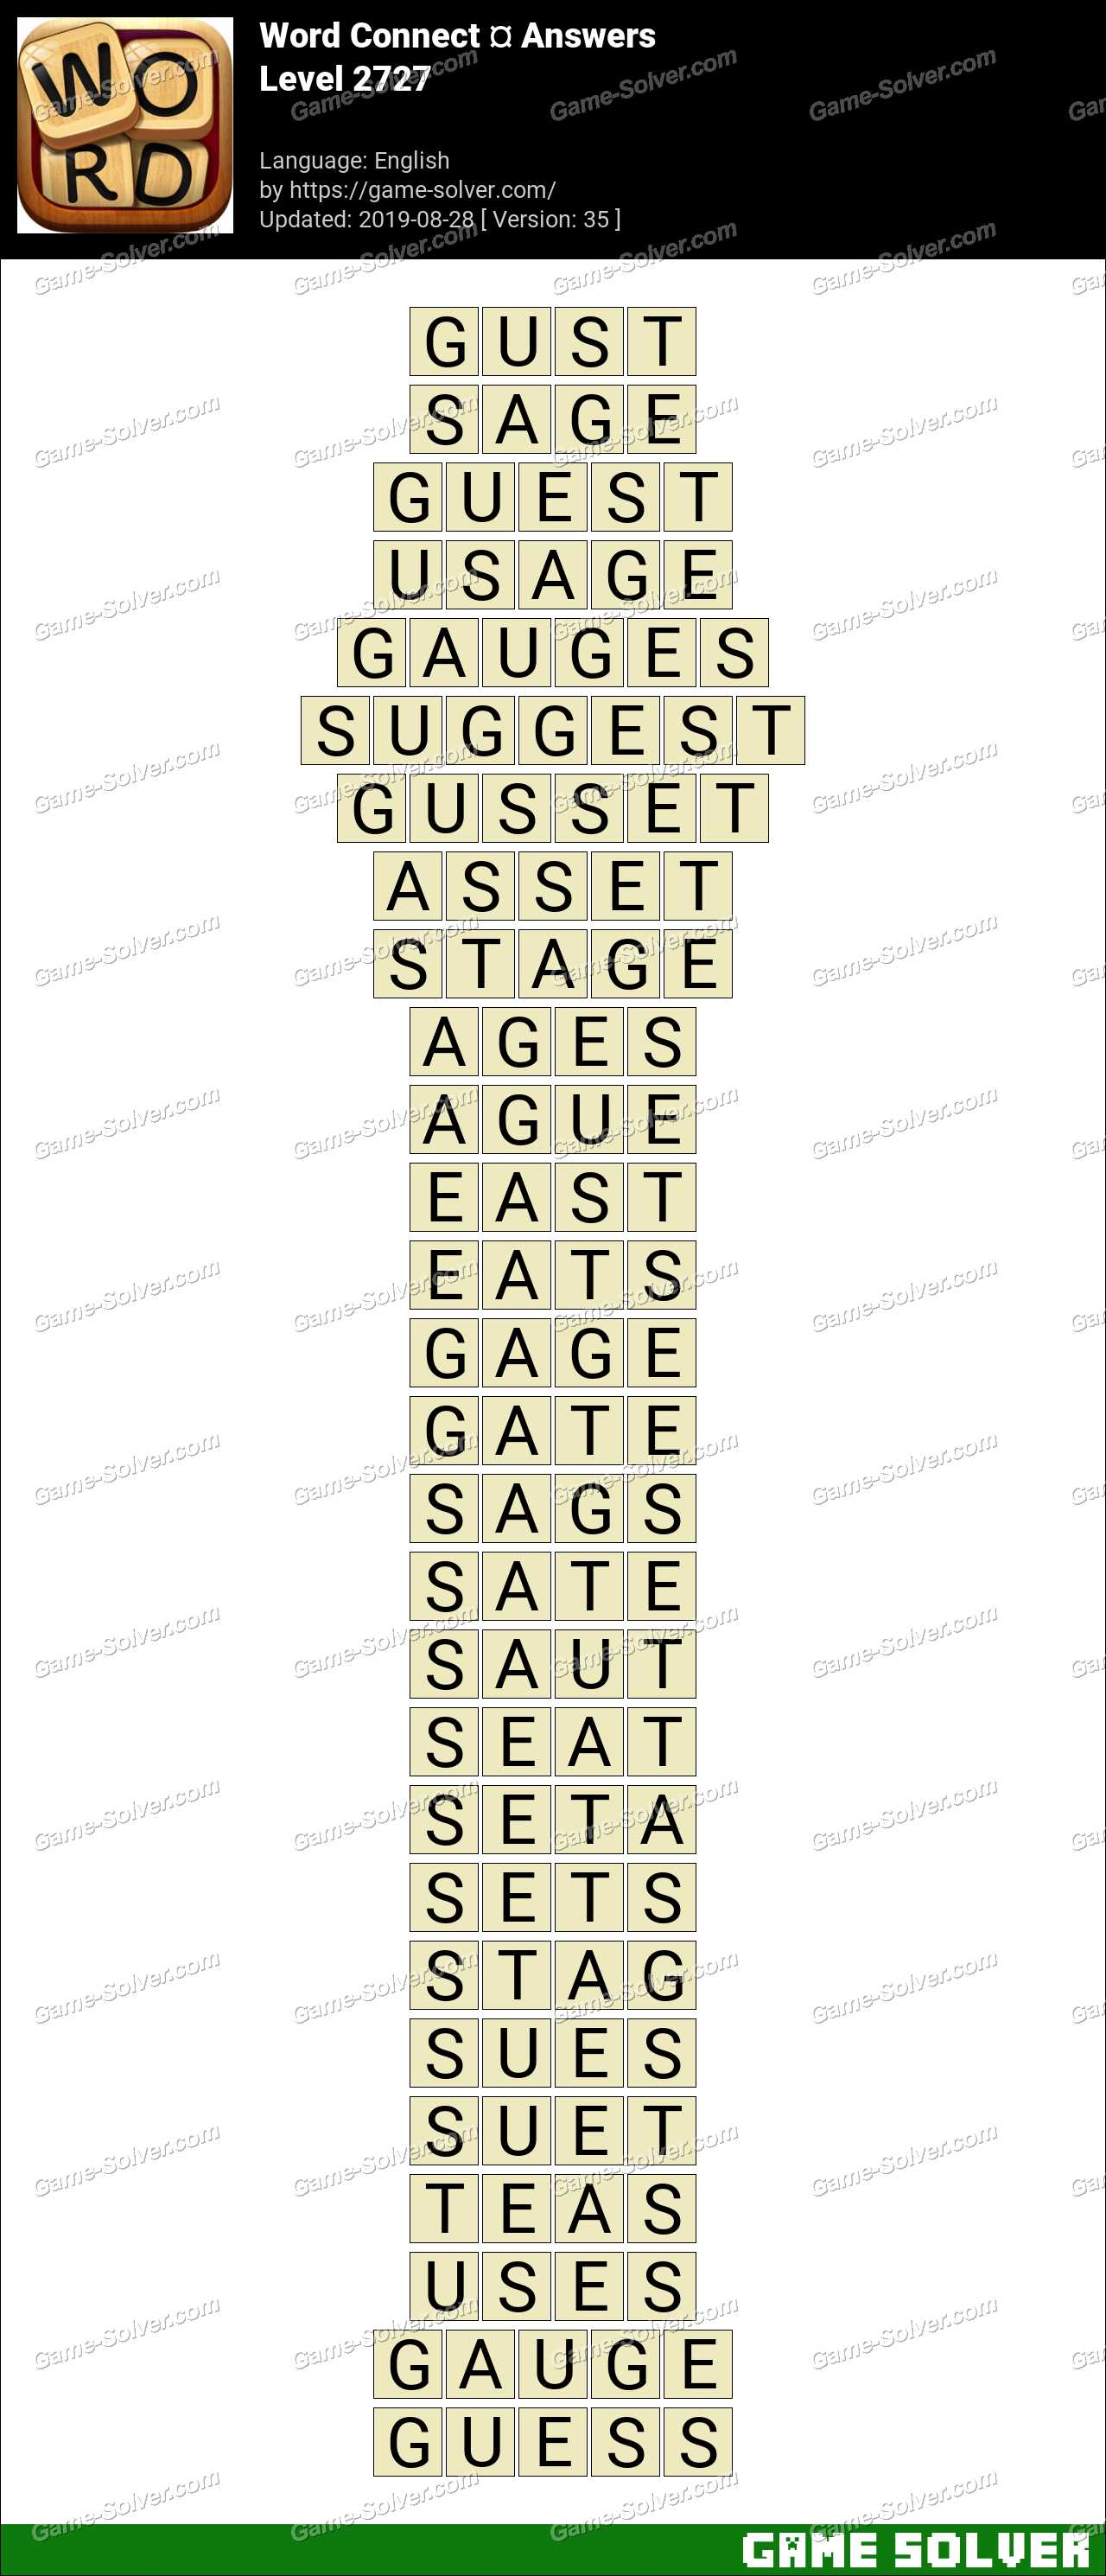 Word Connect Level 2727 Answers